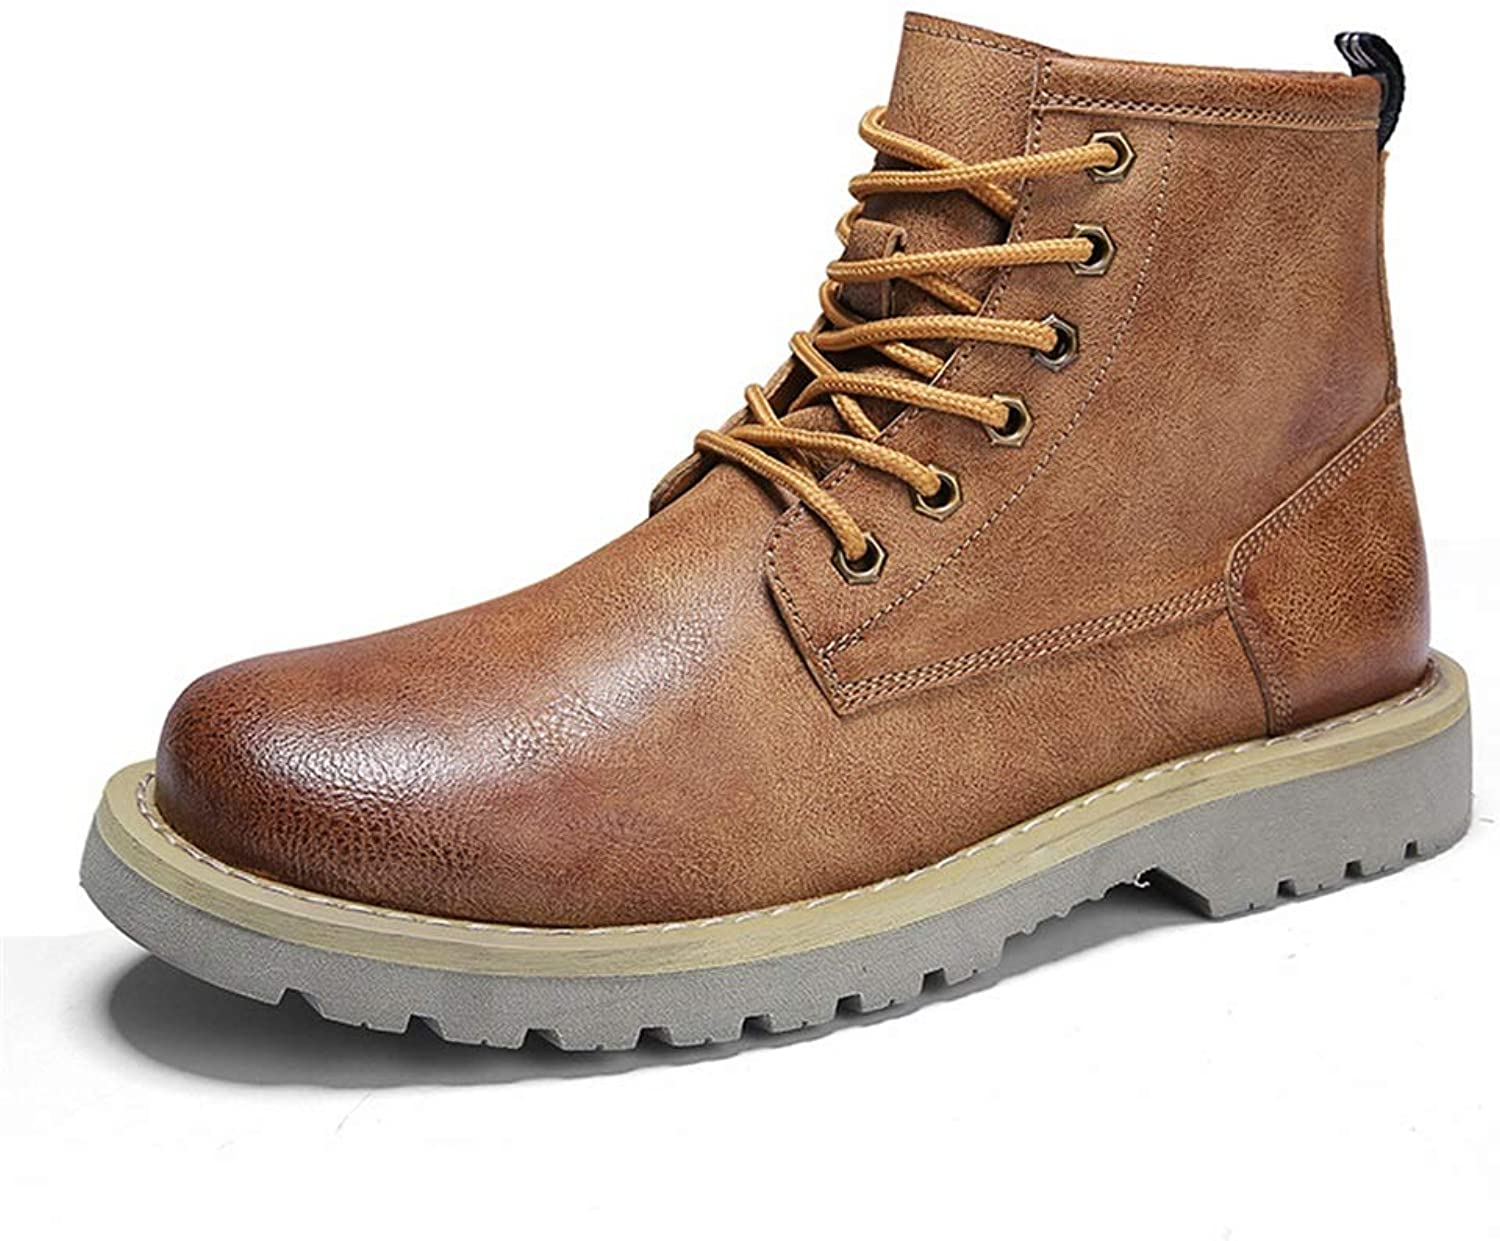 Men's Boots, Fall Winter Tooling Martin Boots Men's Ankle Boots High-top Microfiber Leather Outdoor Leather Boots